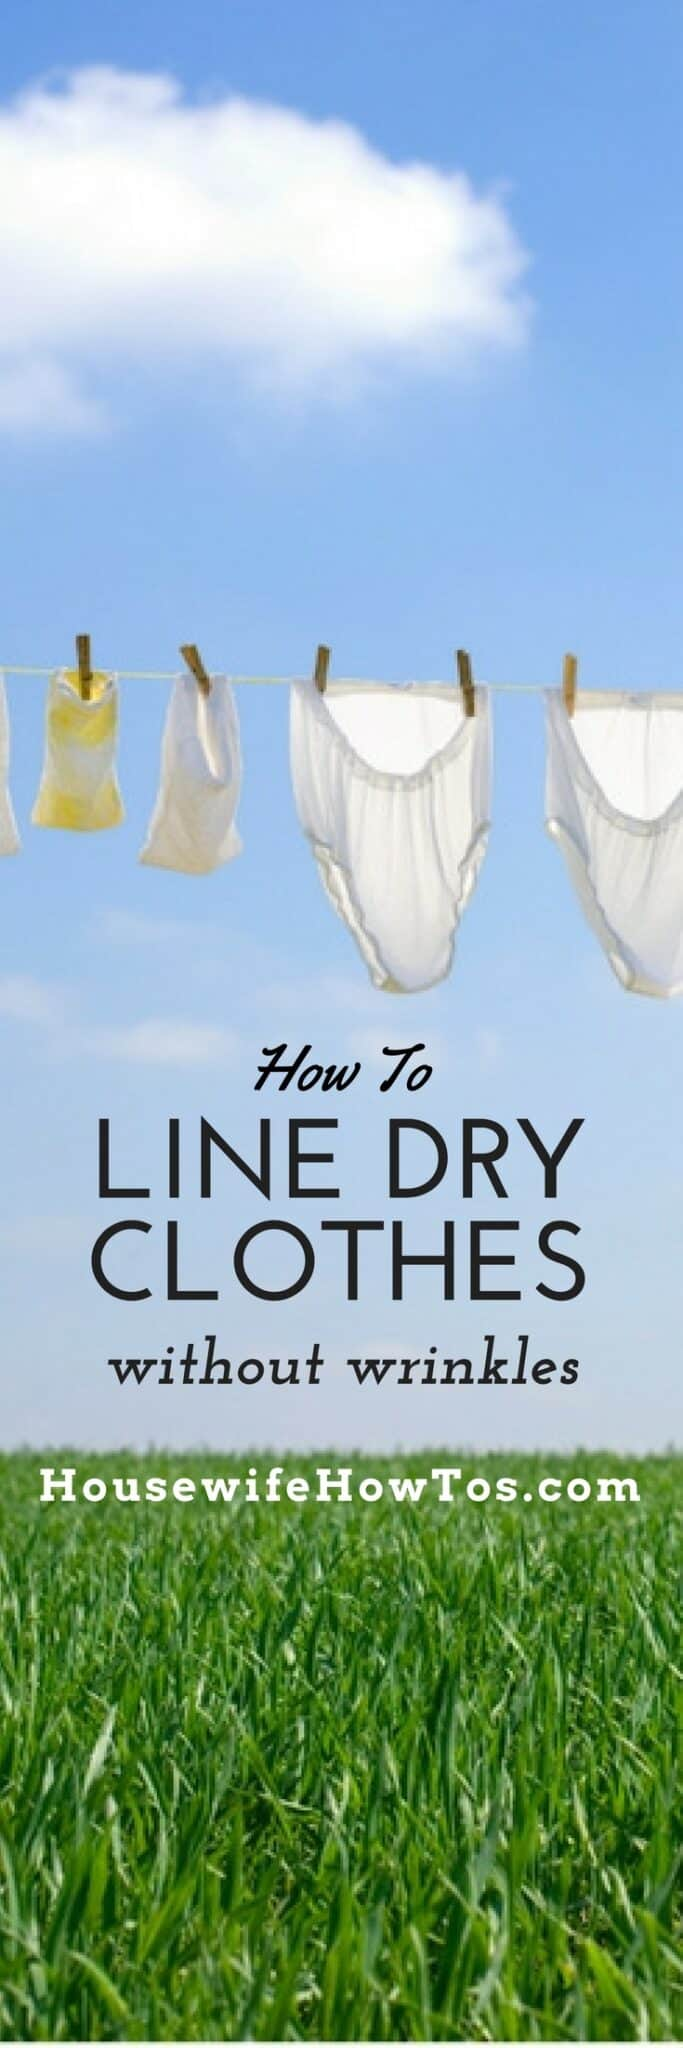 How To Line Dry Clothes - Great tips to keep them wrinkle free!